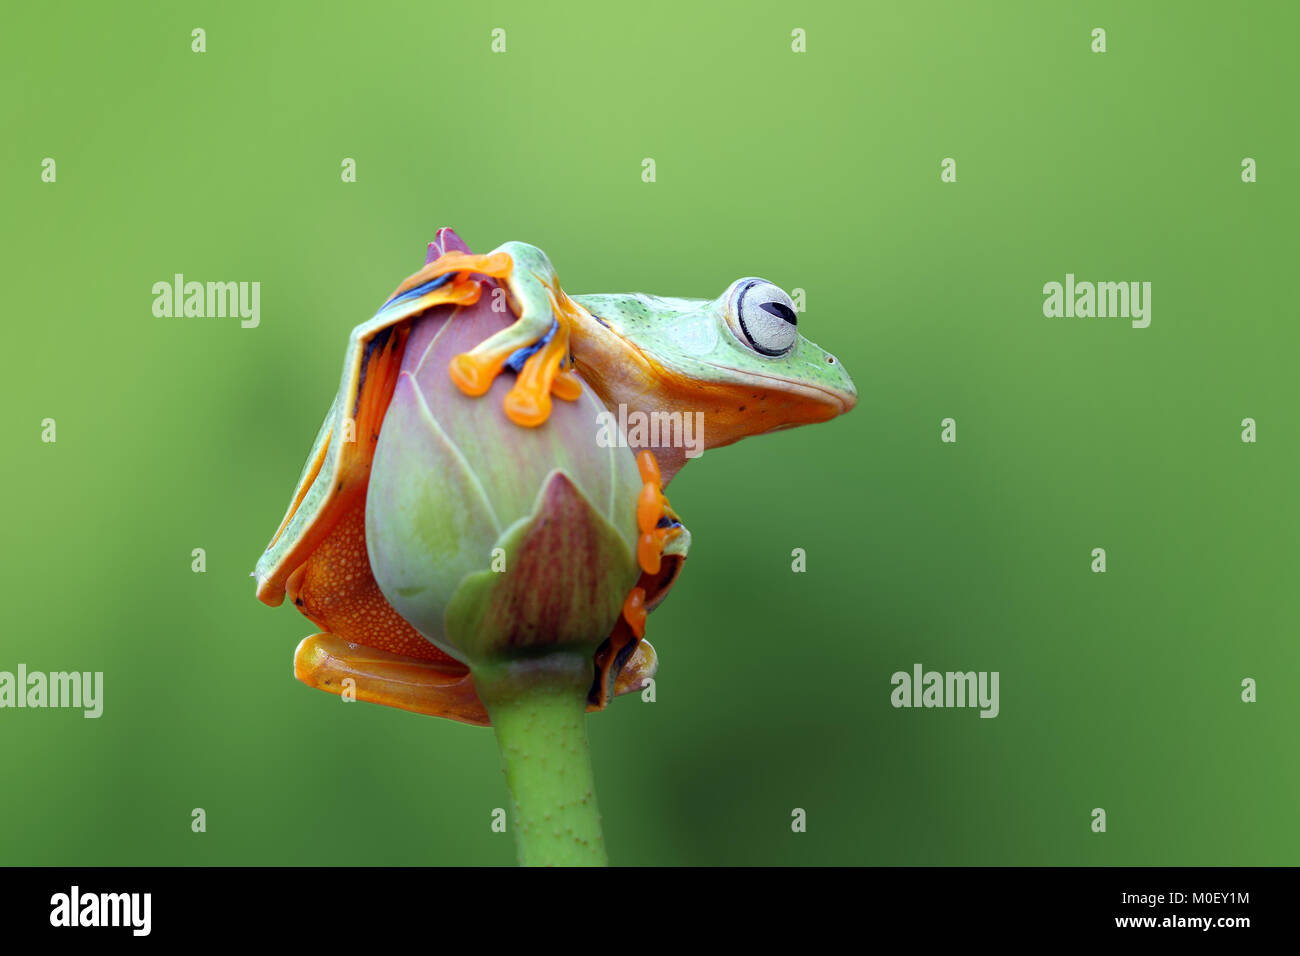 Flying tree frog on a flower bud - Stock Image